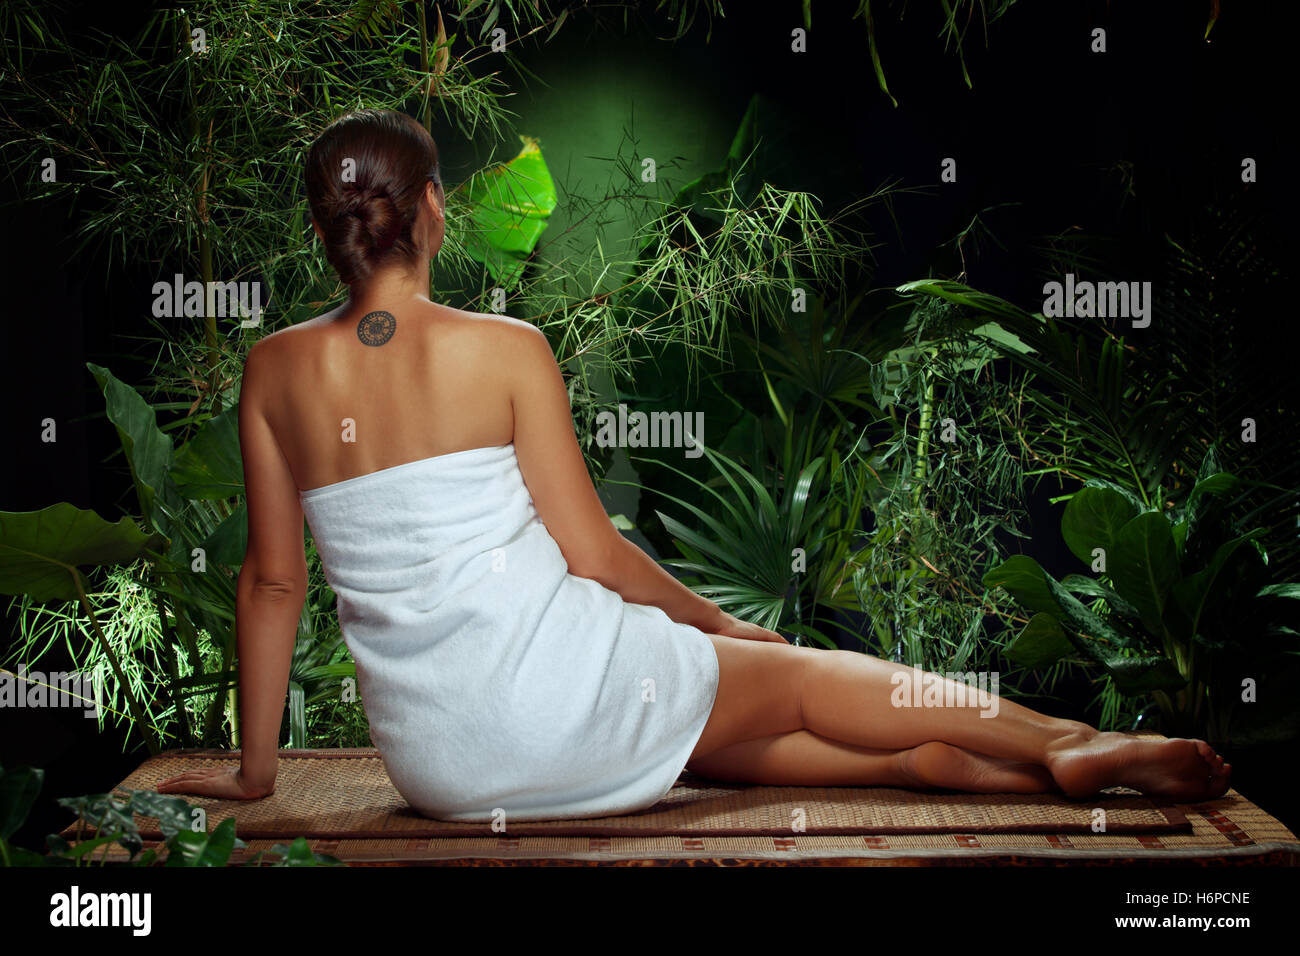 View of nice young woman meditating in spa tropic environment - Stock Image